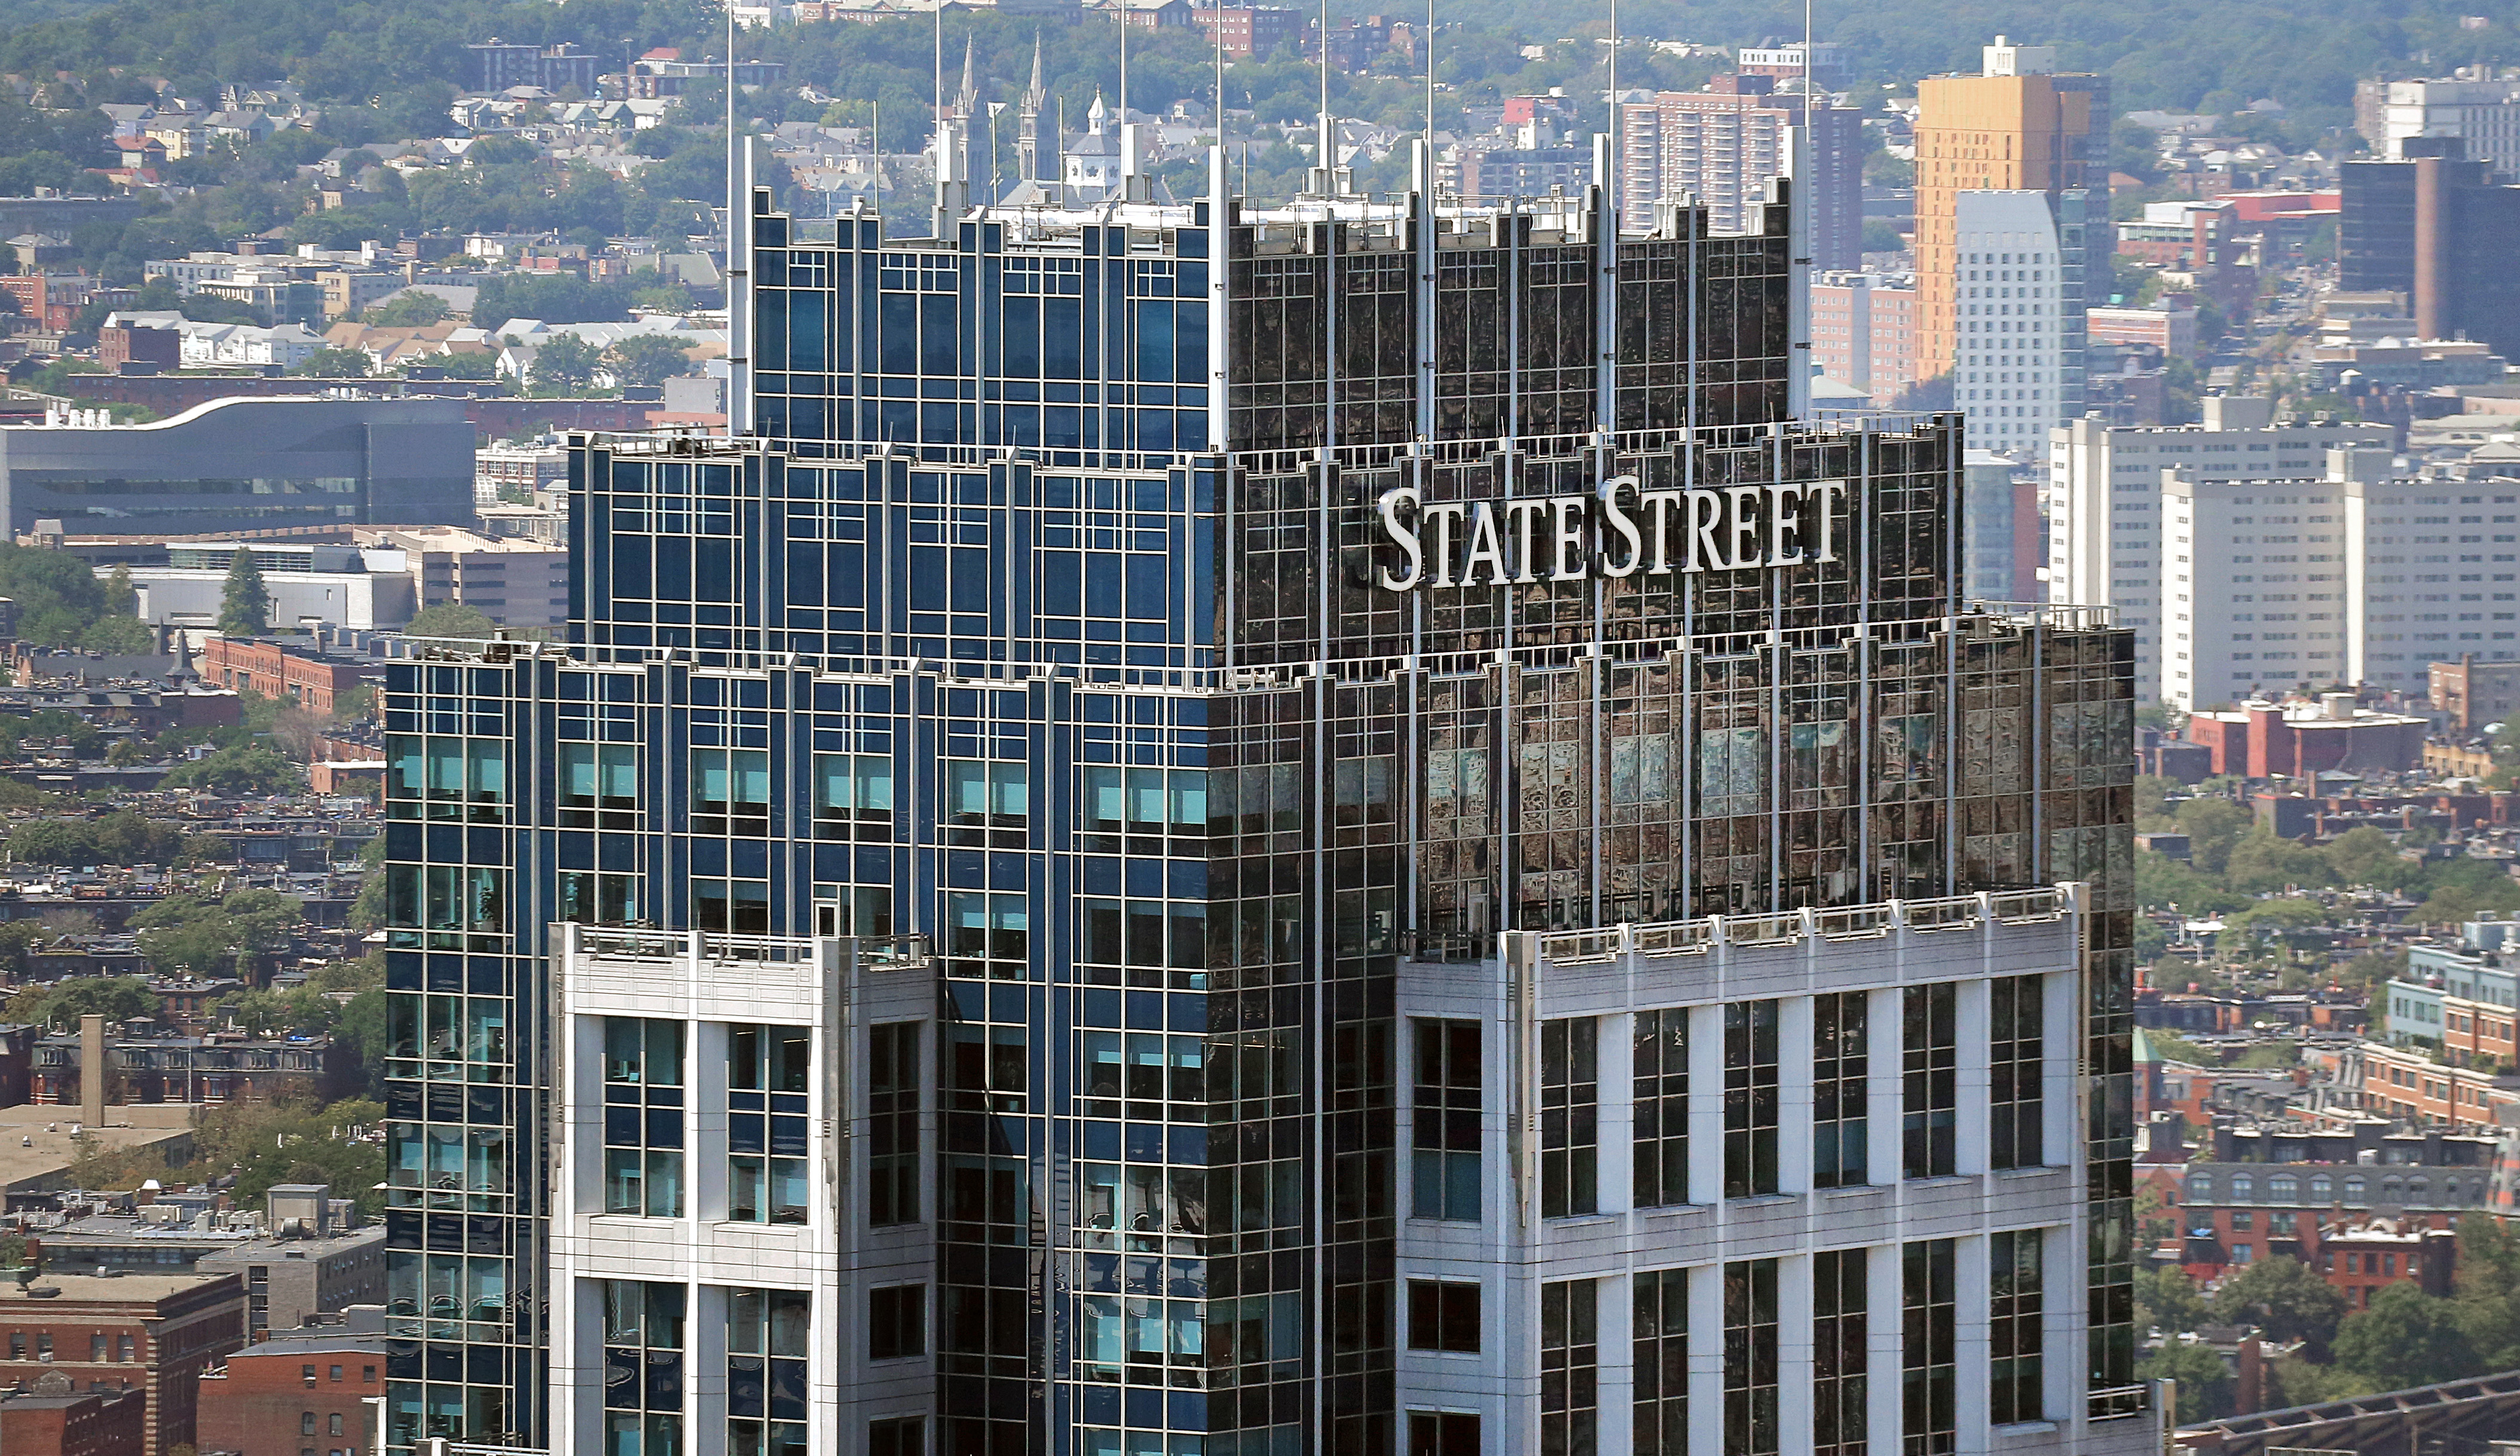 State Street launches more layoffs, estimated 1,500 jobs - The Boston Globe